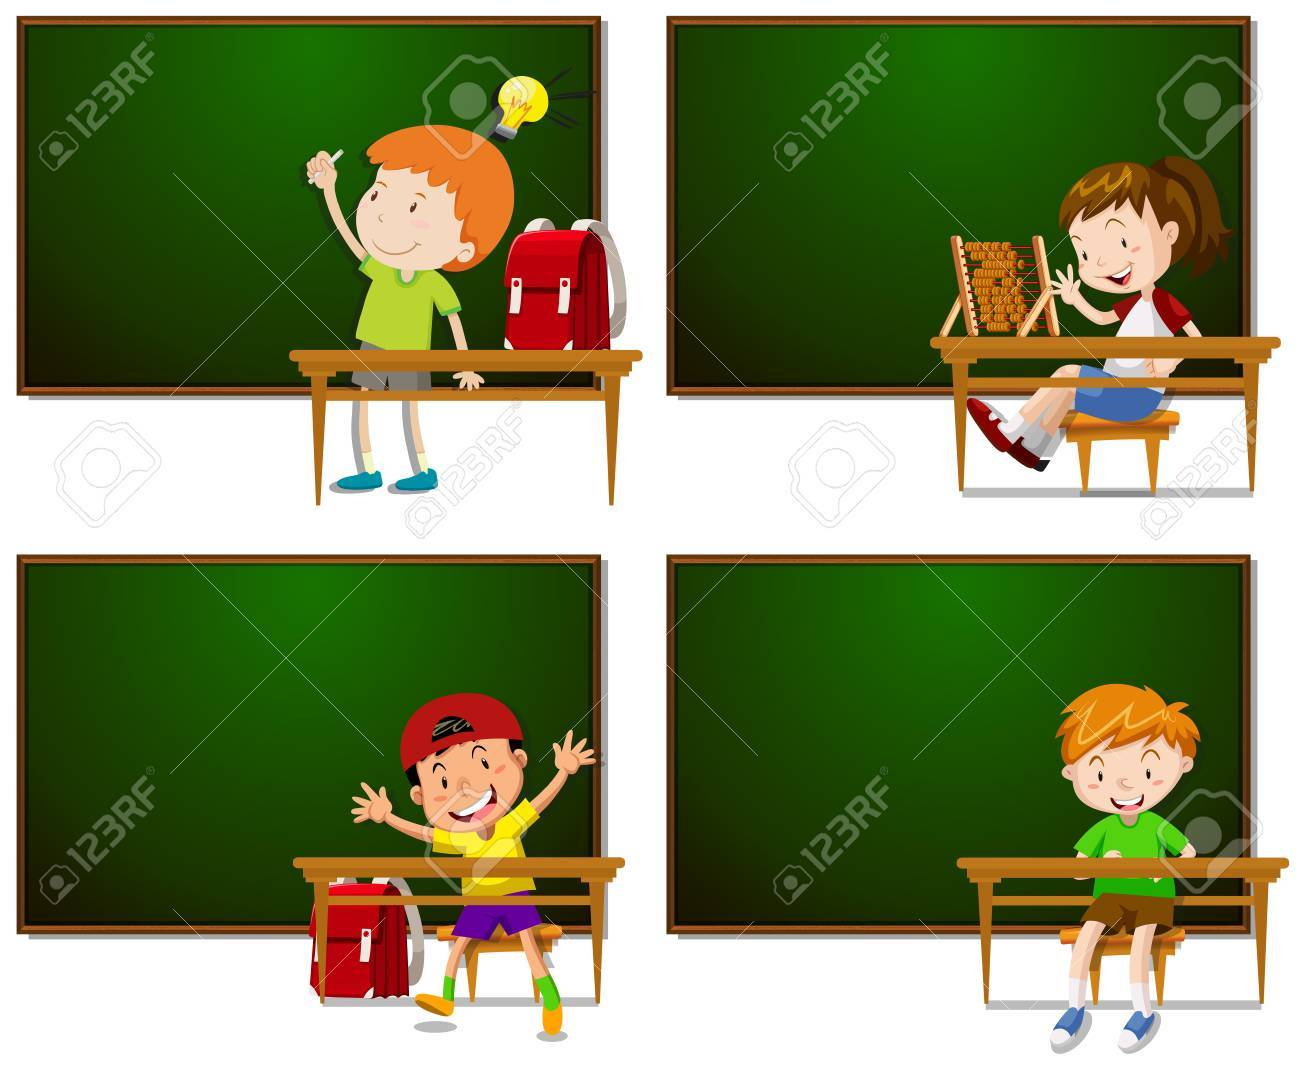 Frames With Boys And Girls Illustration Royalty Free Cliparts ...